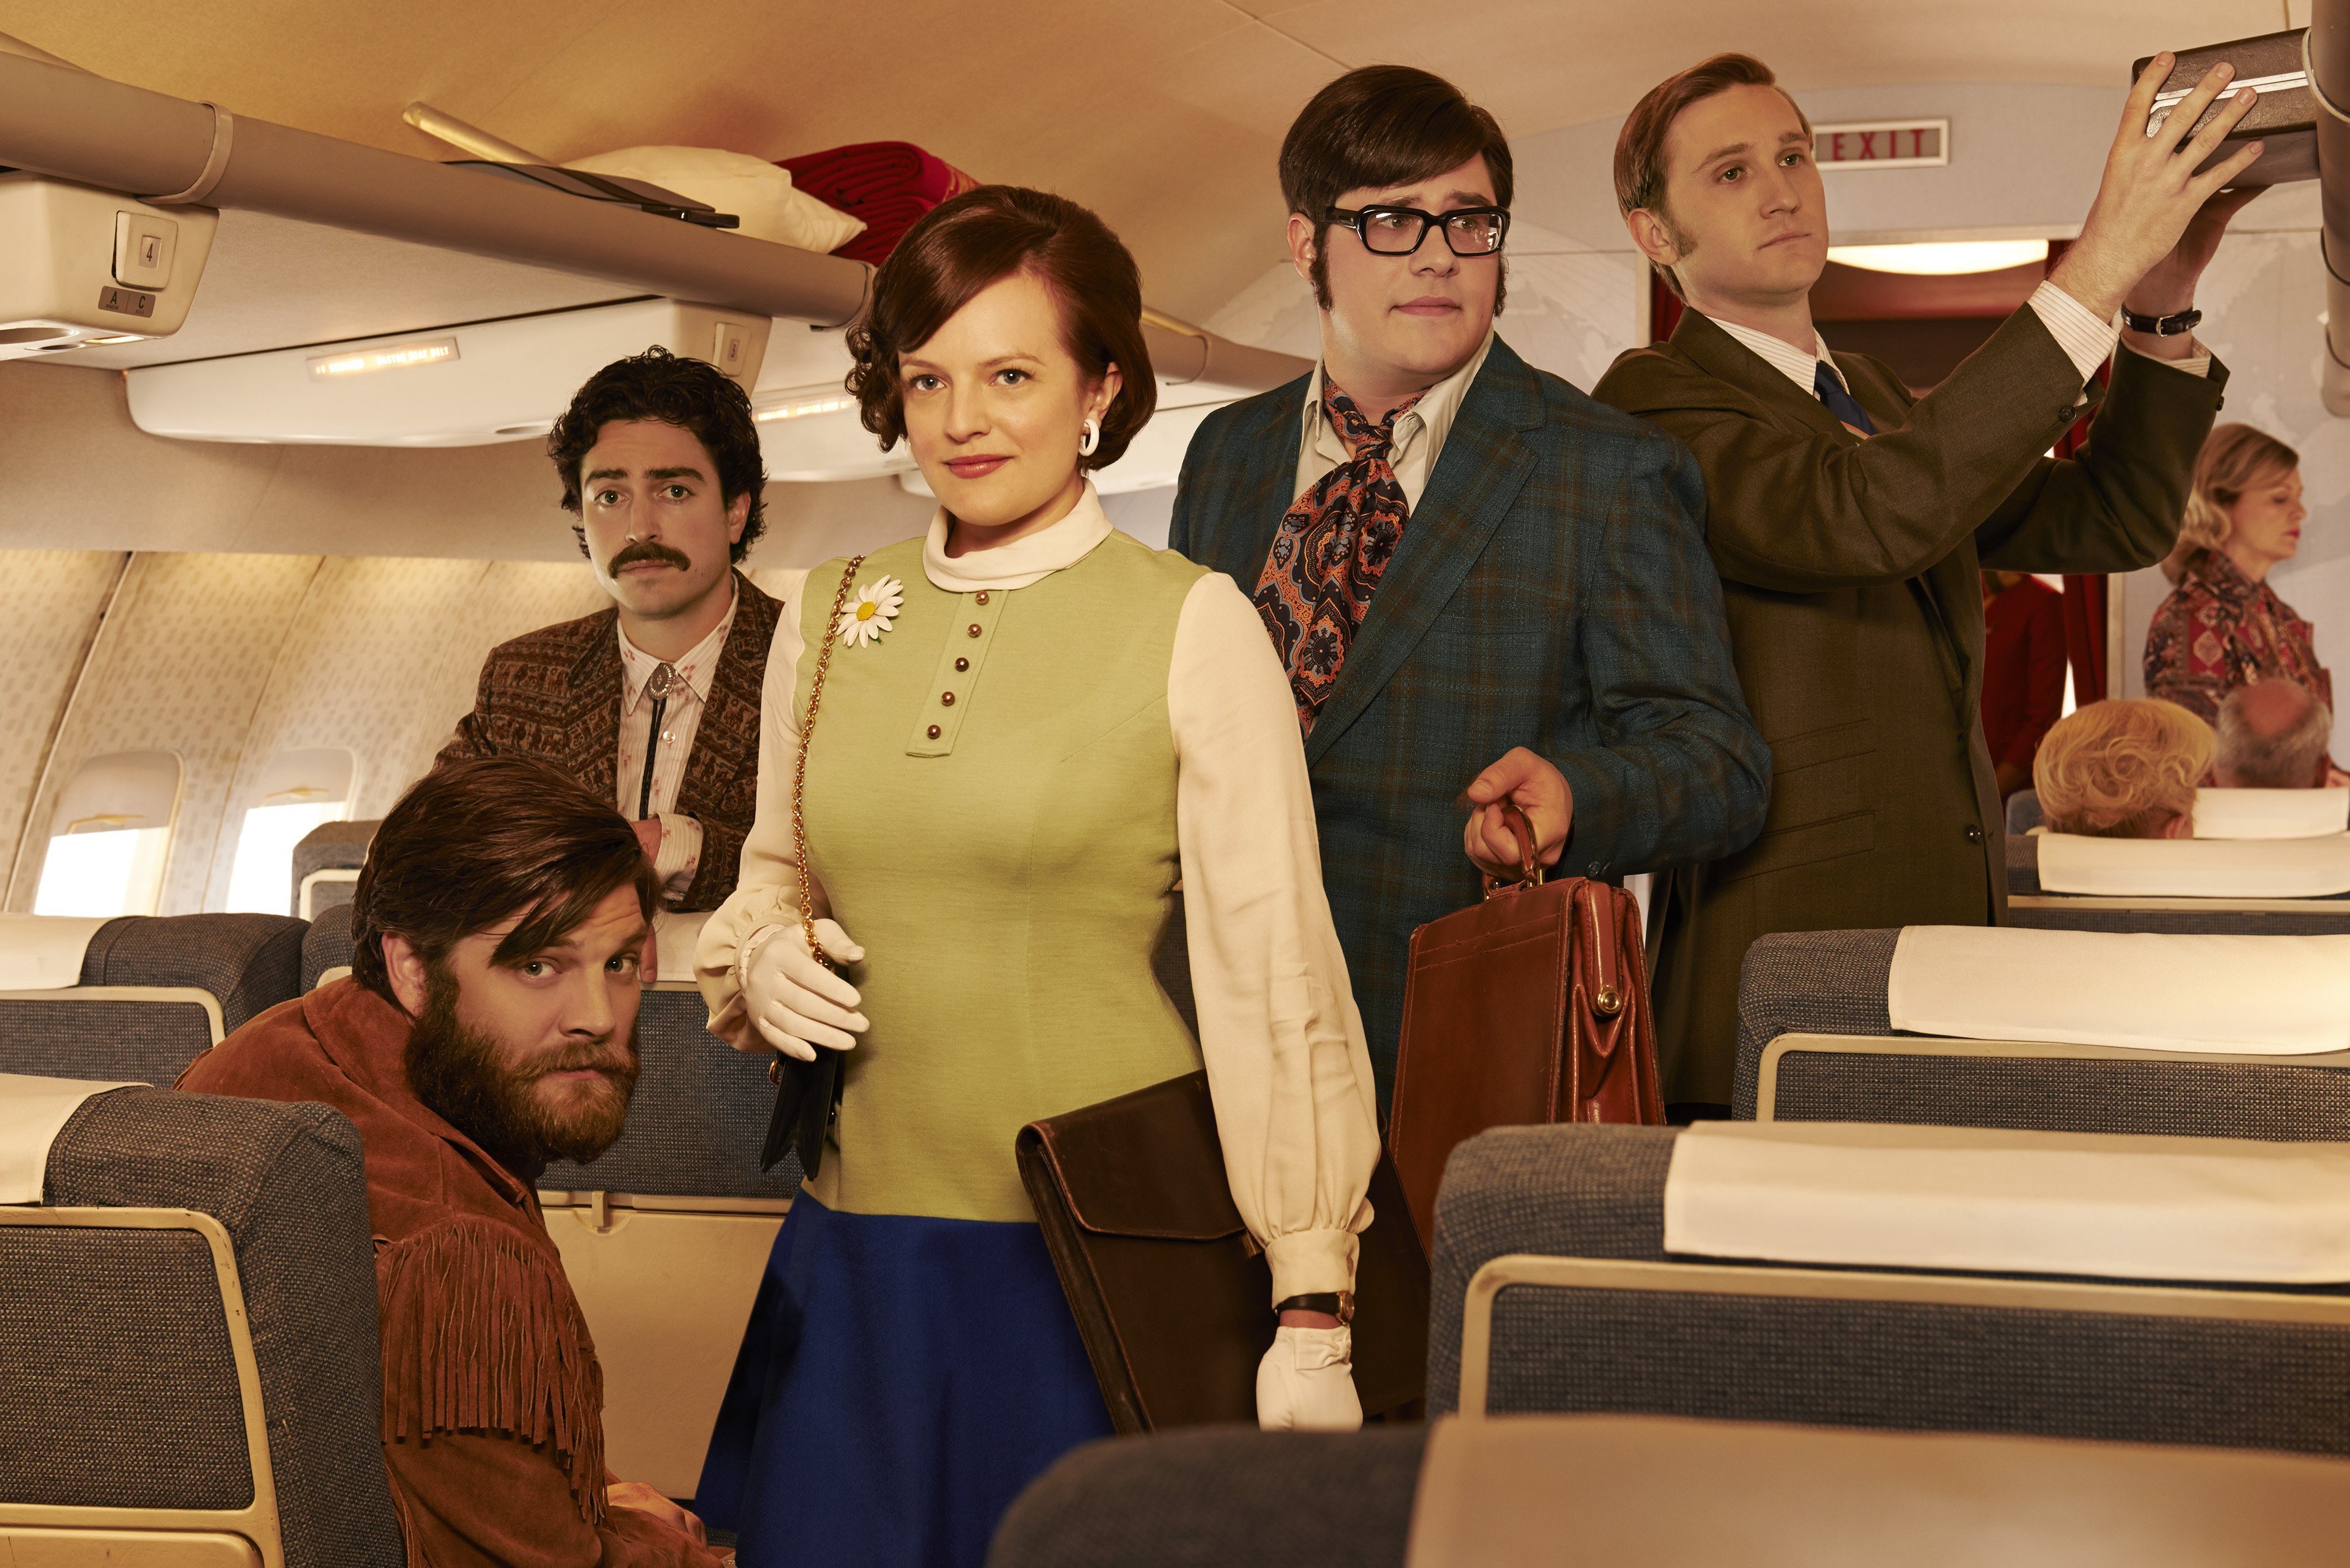 'Mad Men' Season 7 Trailer and Images: Change the Conversation – /Film